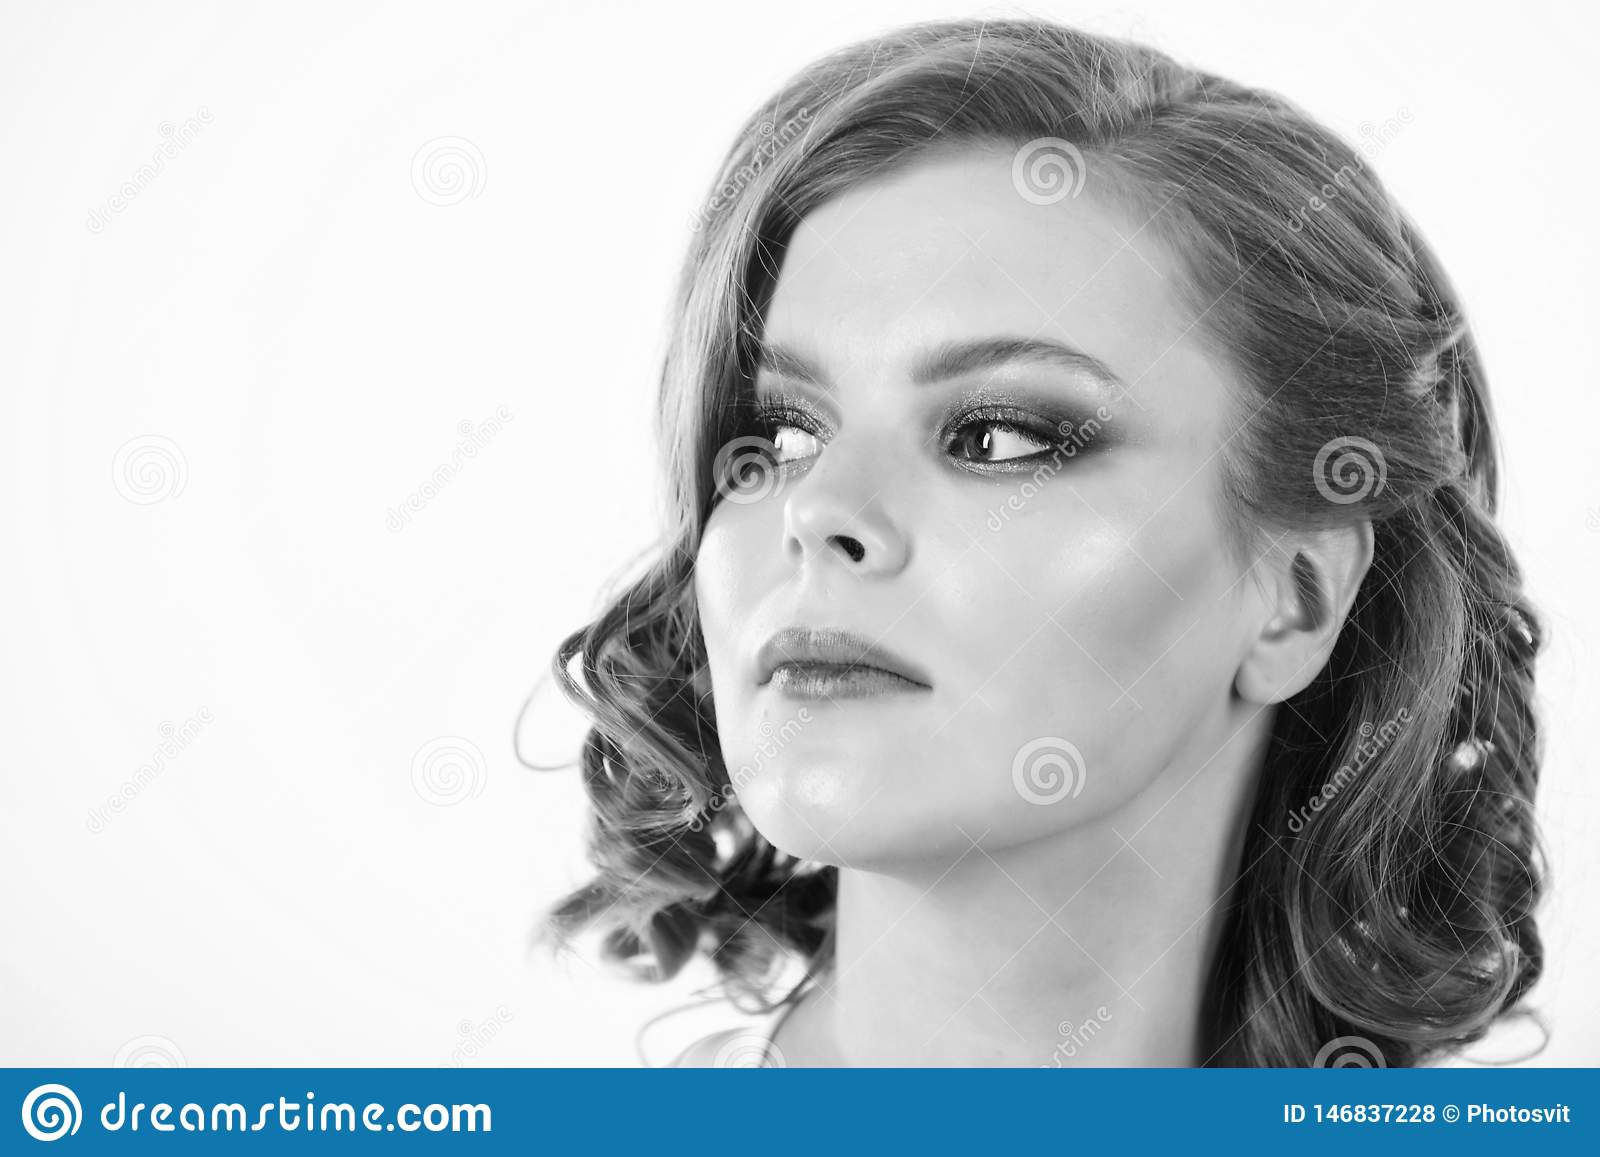 Elegant makeup concept. Retro and vintage. Girl with perfect healthy skin and beautiful makeup. Girl retro hairstyle and